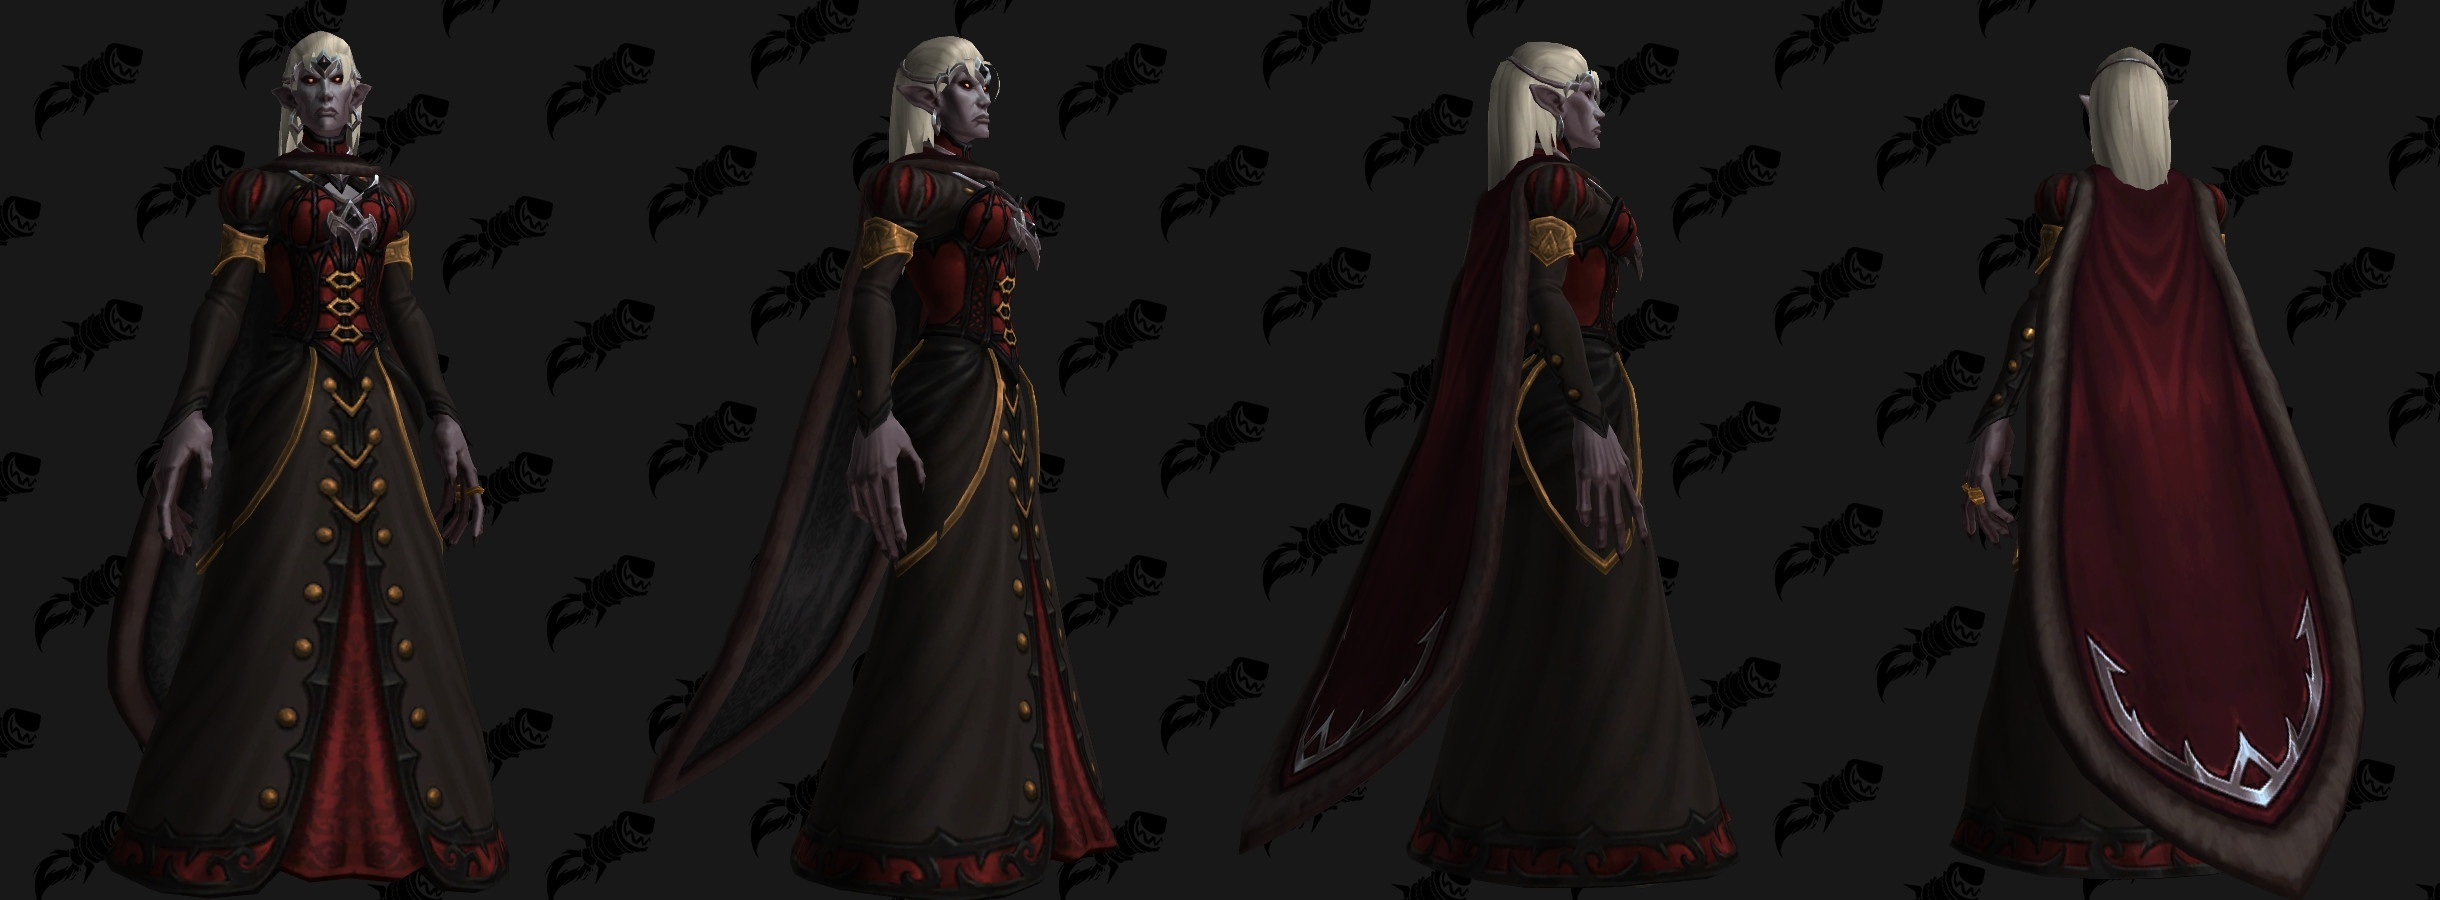 The Council of Blood - Castle Nathria Strategy Guide - Guides - Wowhead